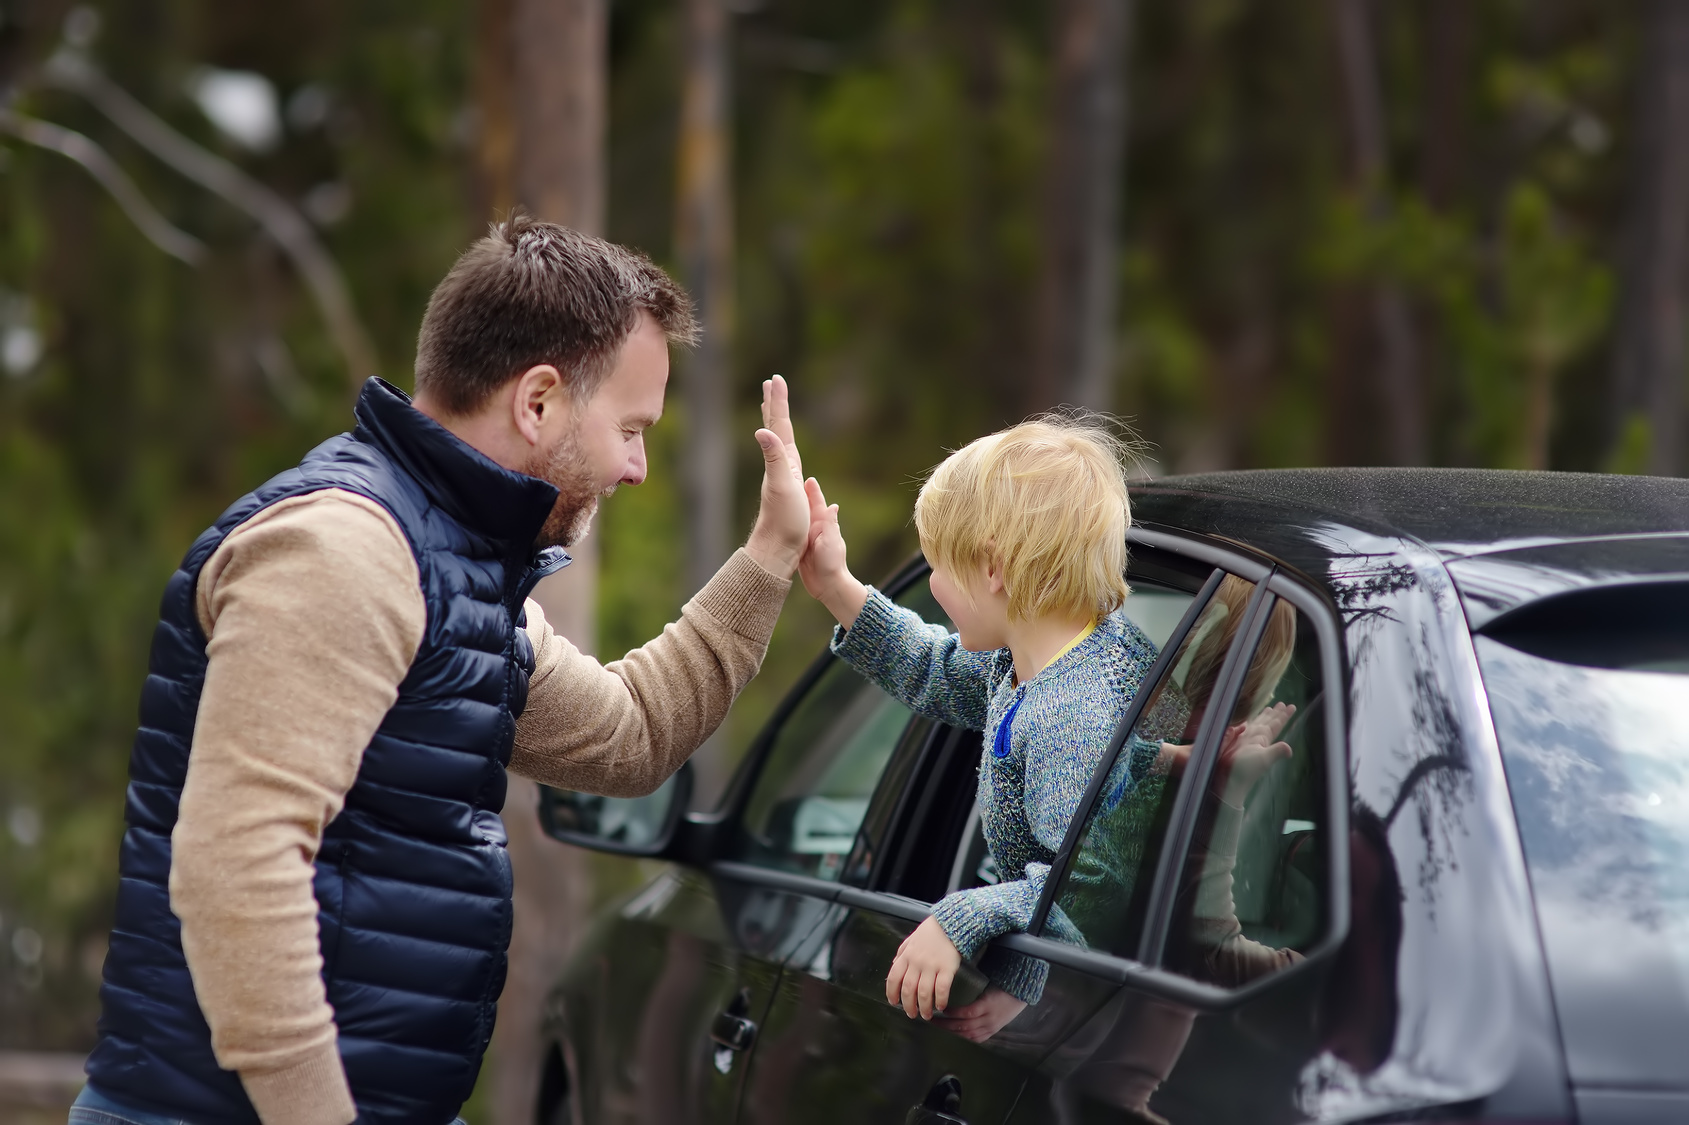 Cute little boy and his father is ready for a trip or a journey by car. They express their delight with a high-five gesture. Quality family time.